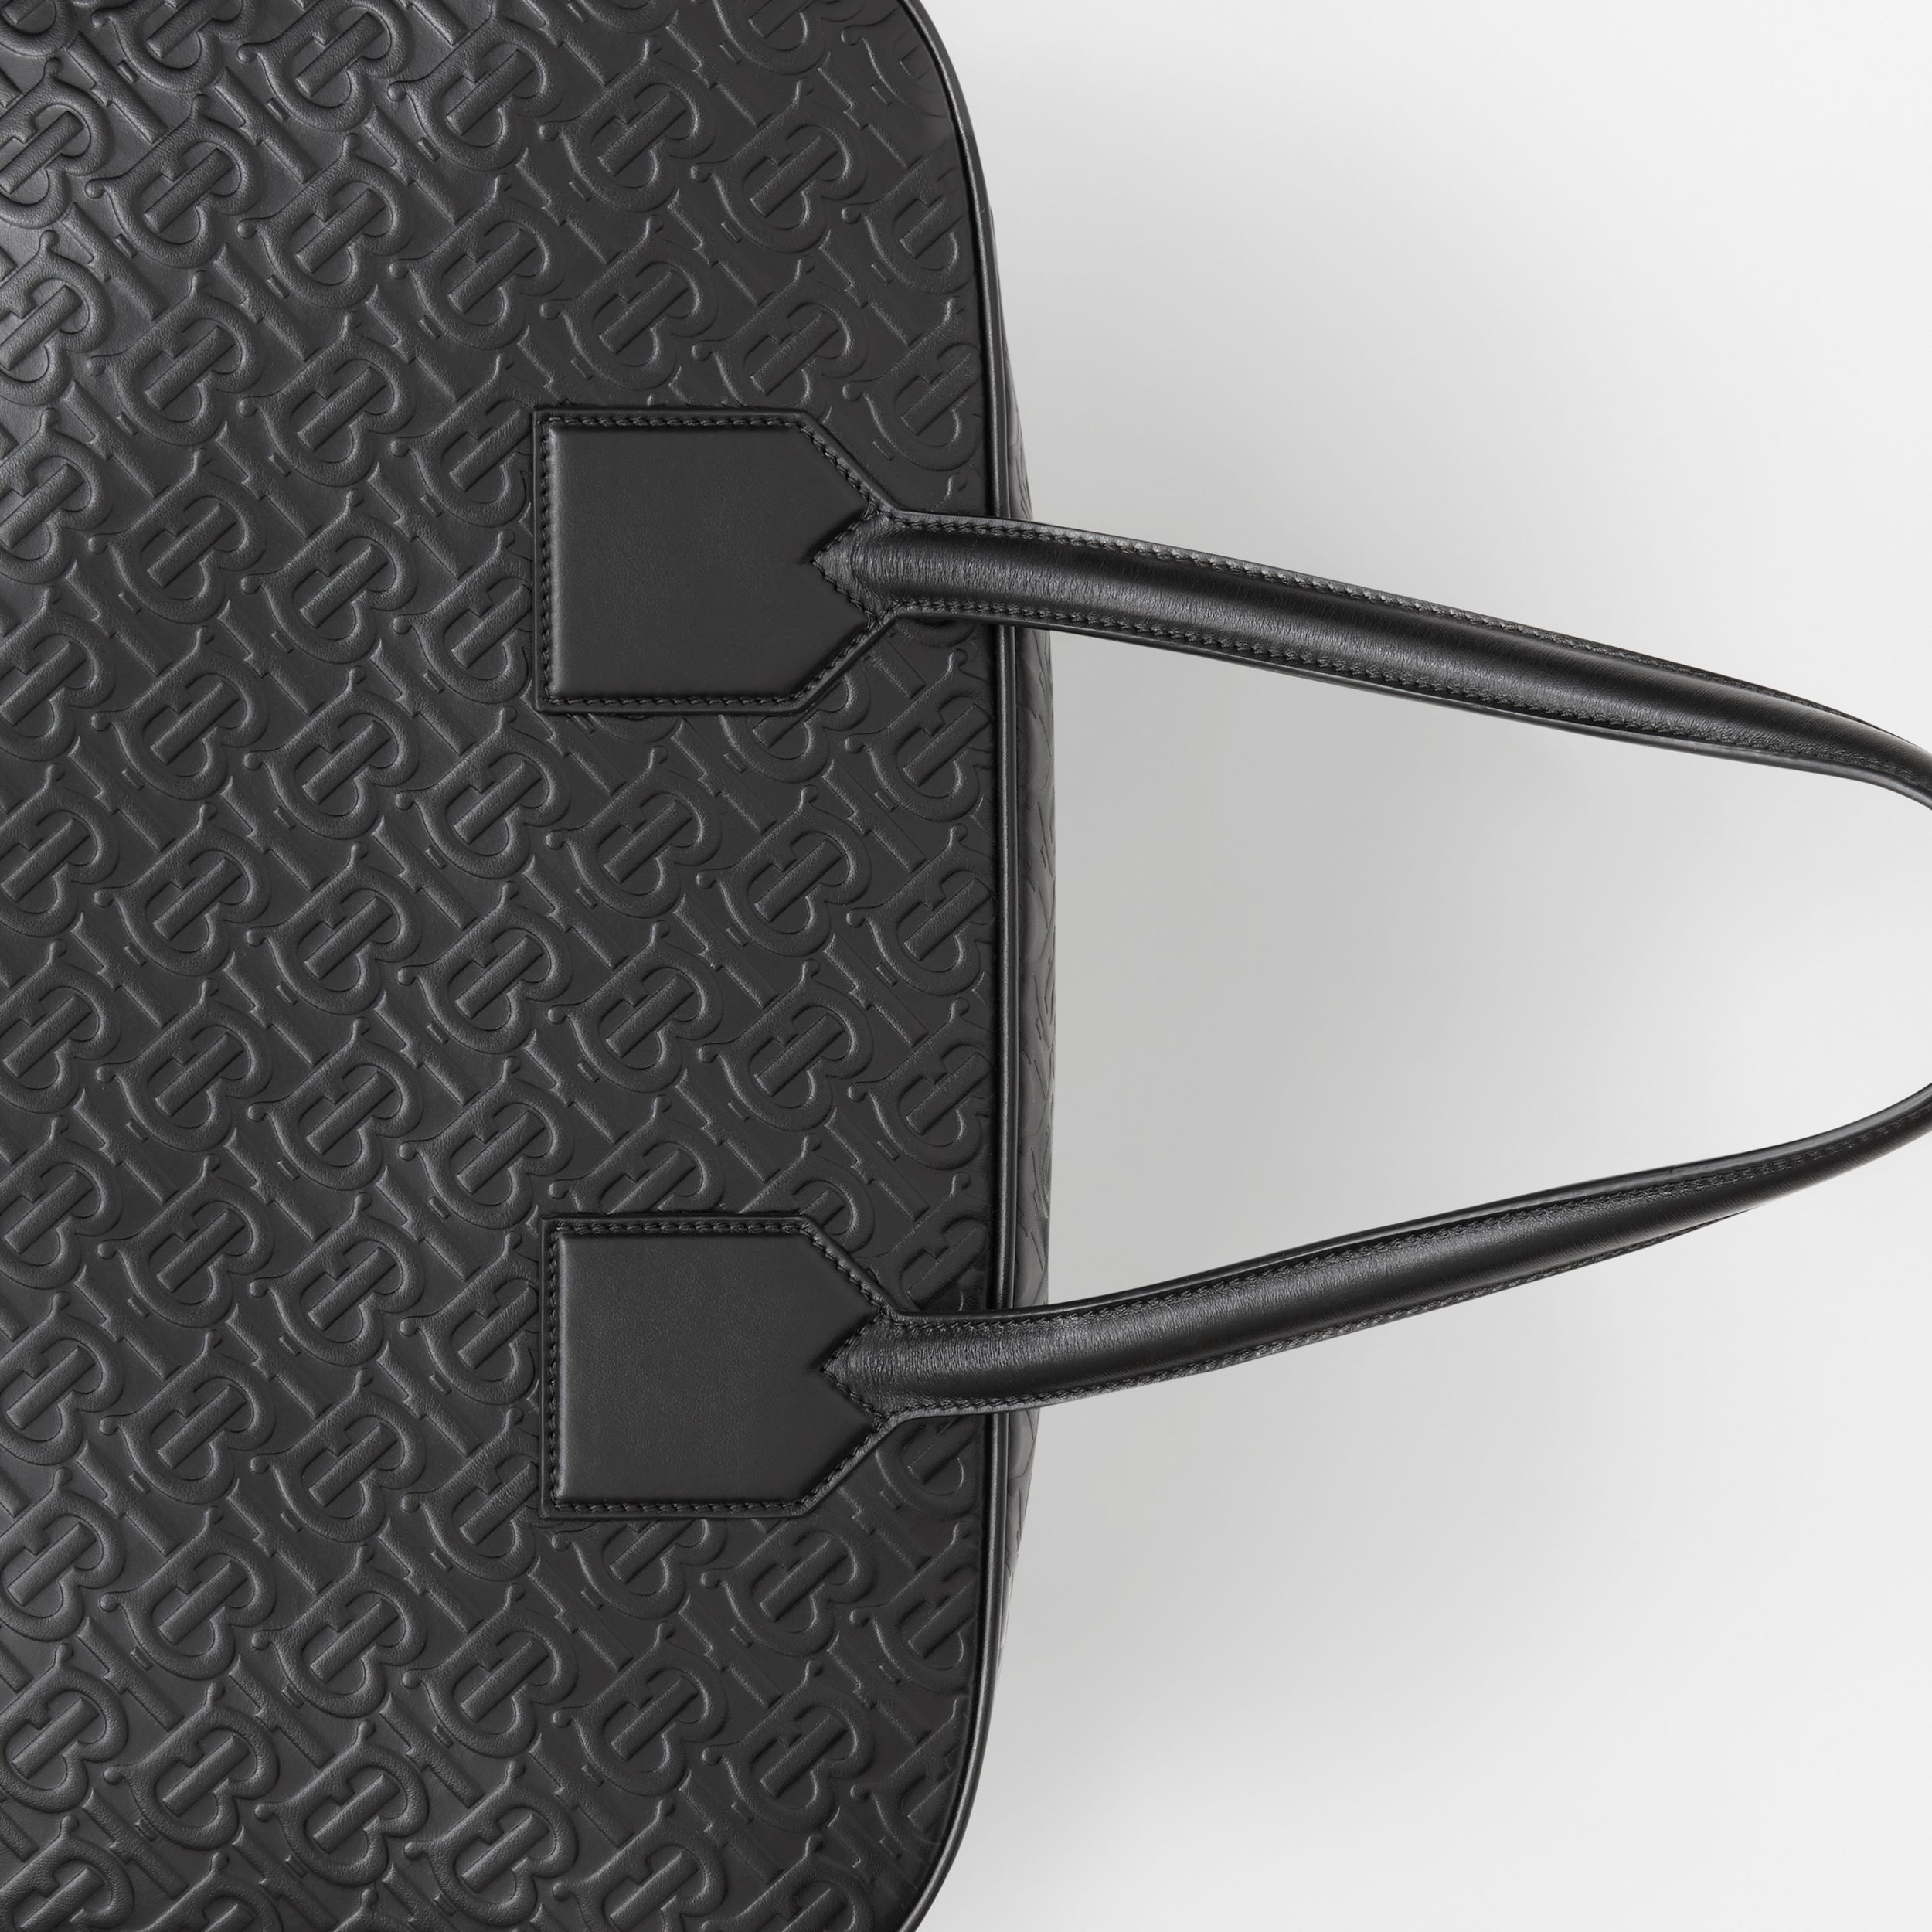 Large Monogram Leather Cube Bag in Black | Burberry - 2